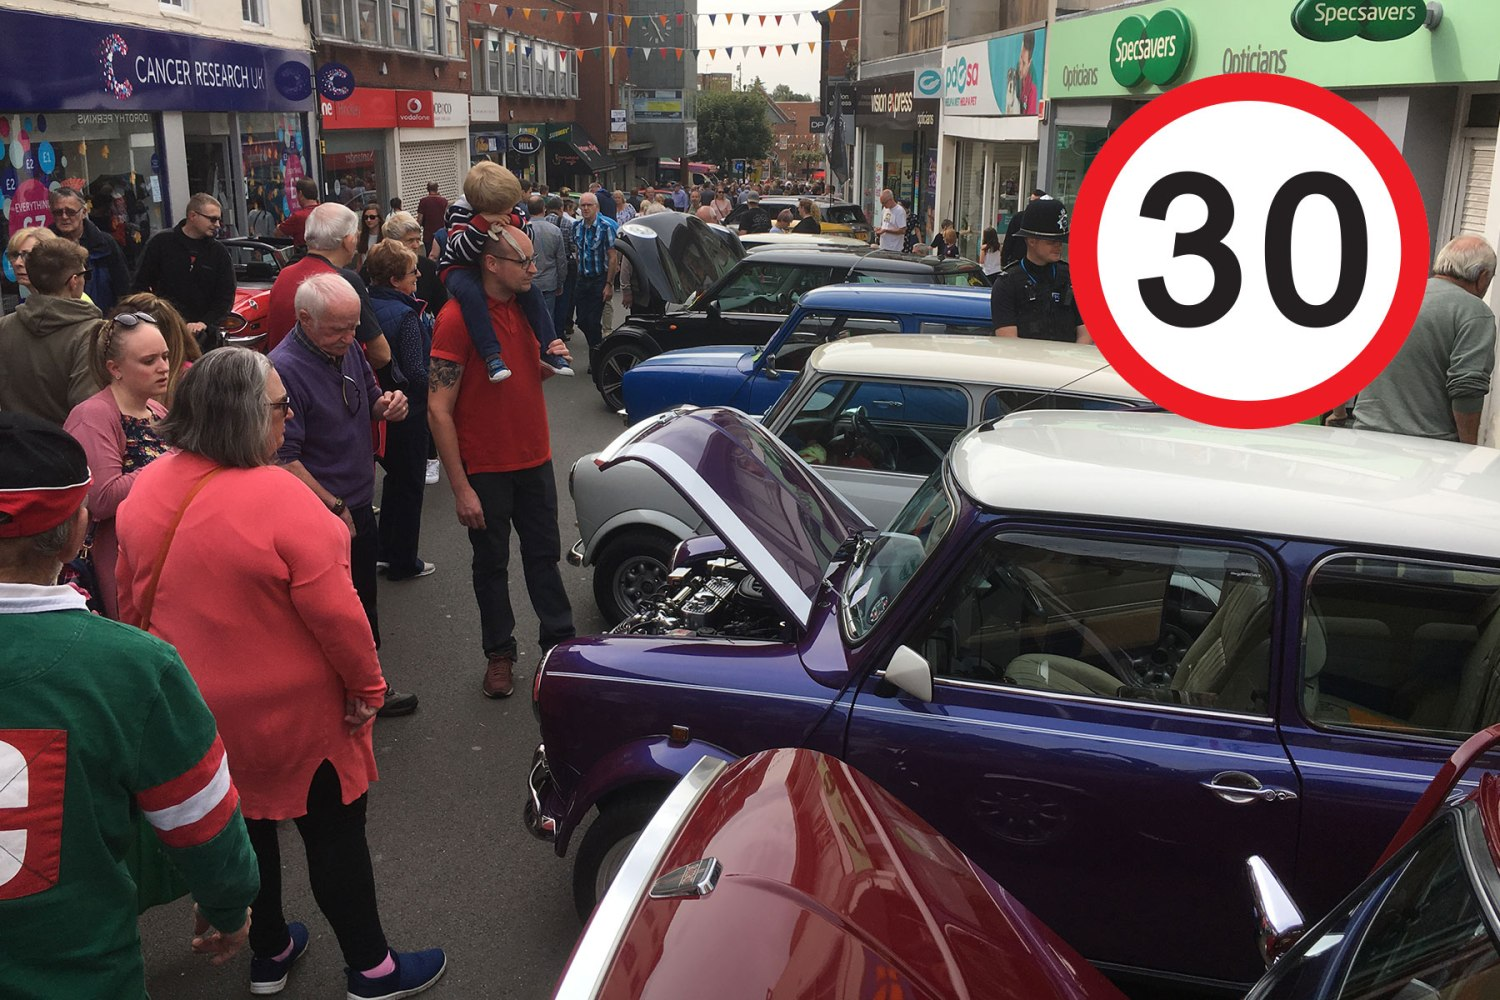 Leicester is a classic car hotspot